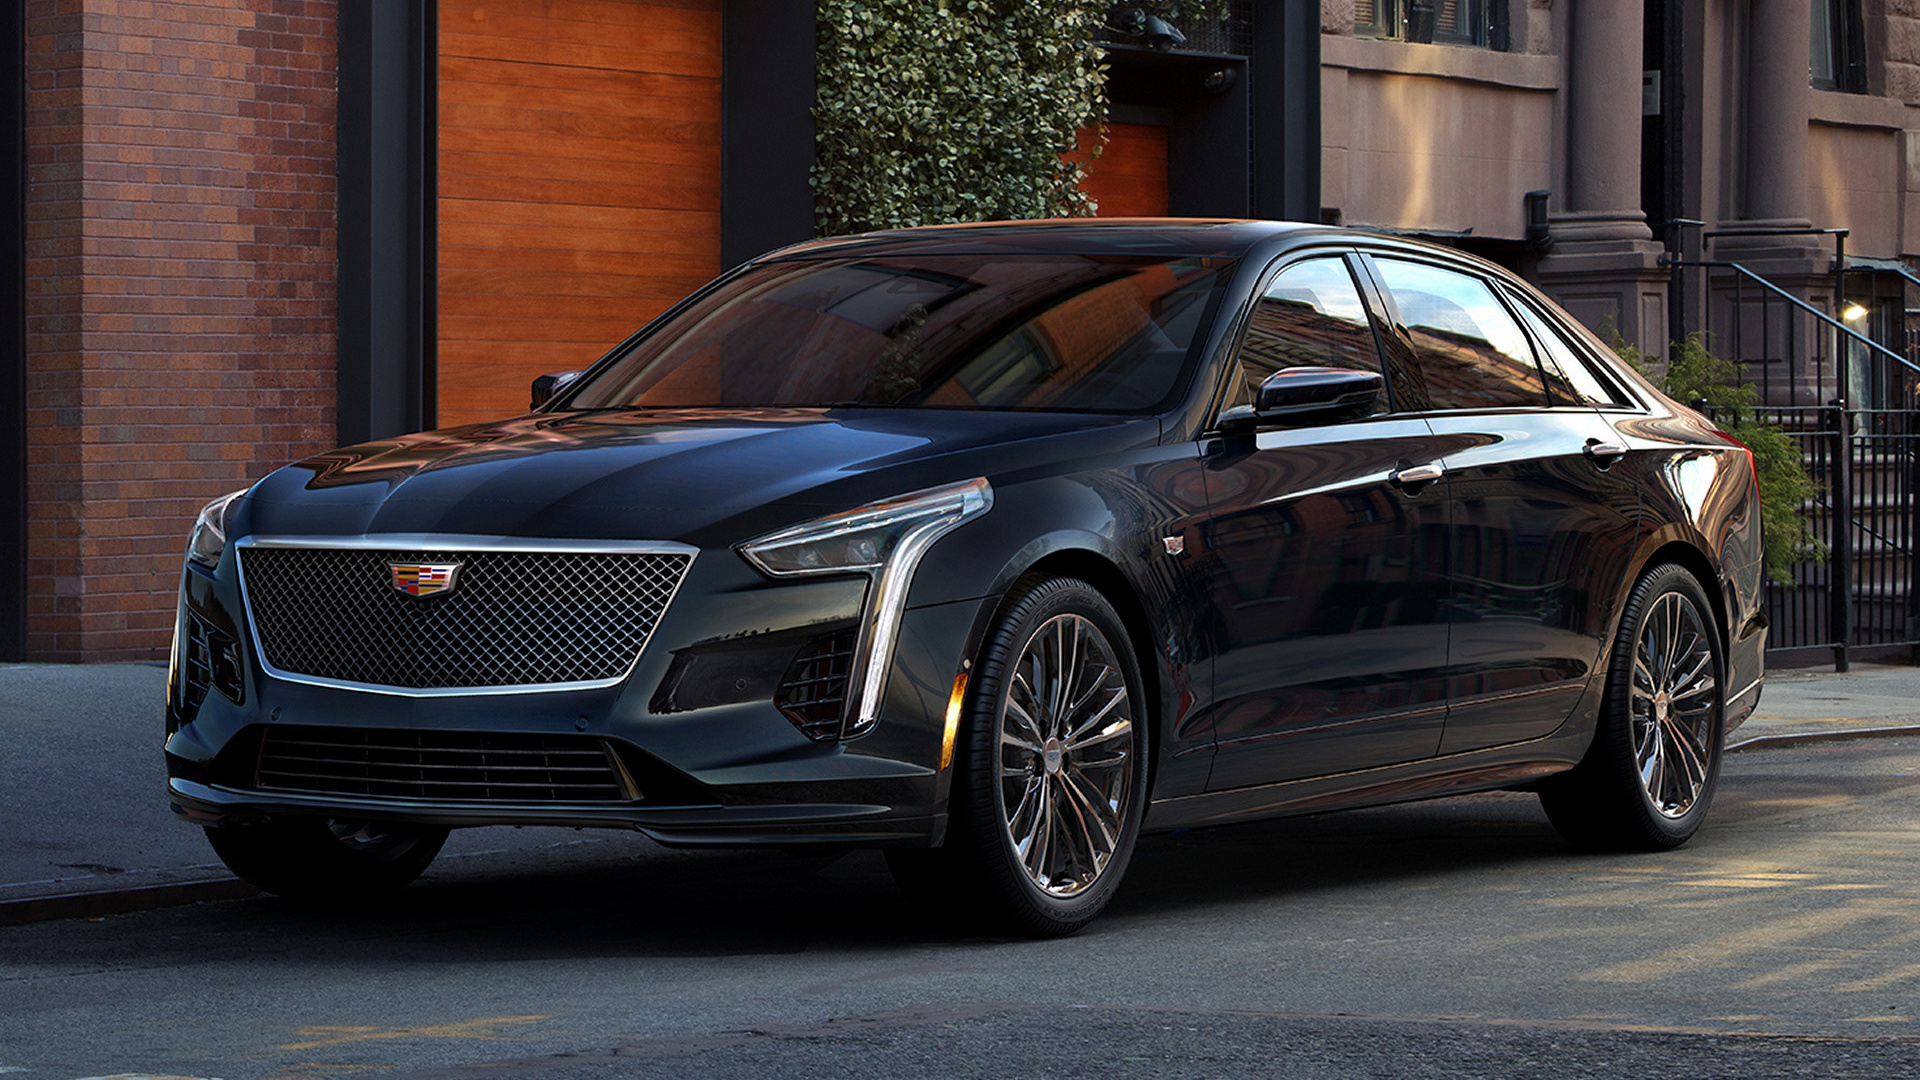 Cadillac CT6 V-Sport (2019) Wallpapers and HD Images - Car Pixel